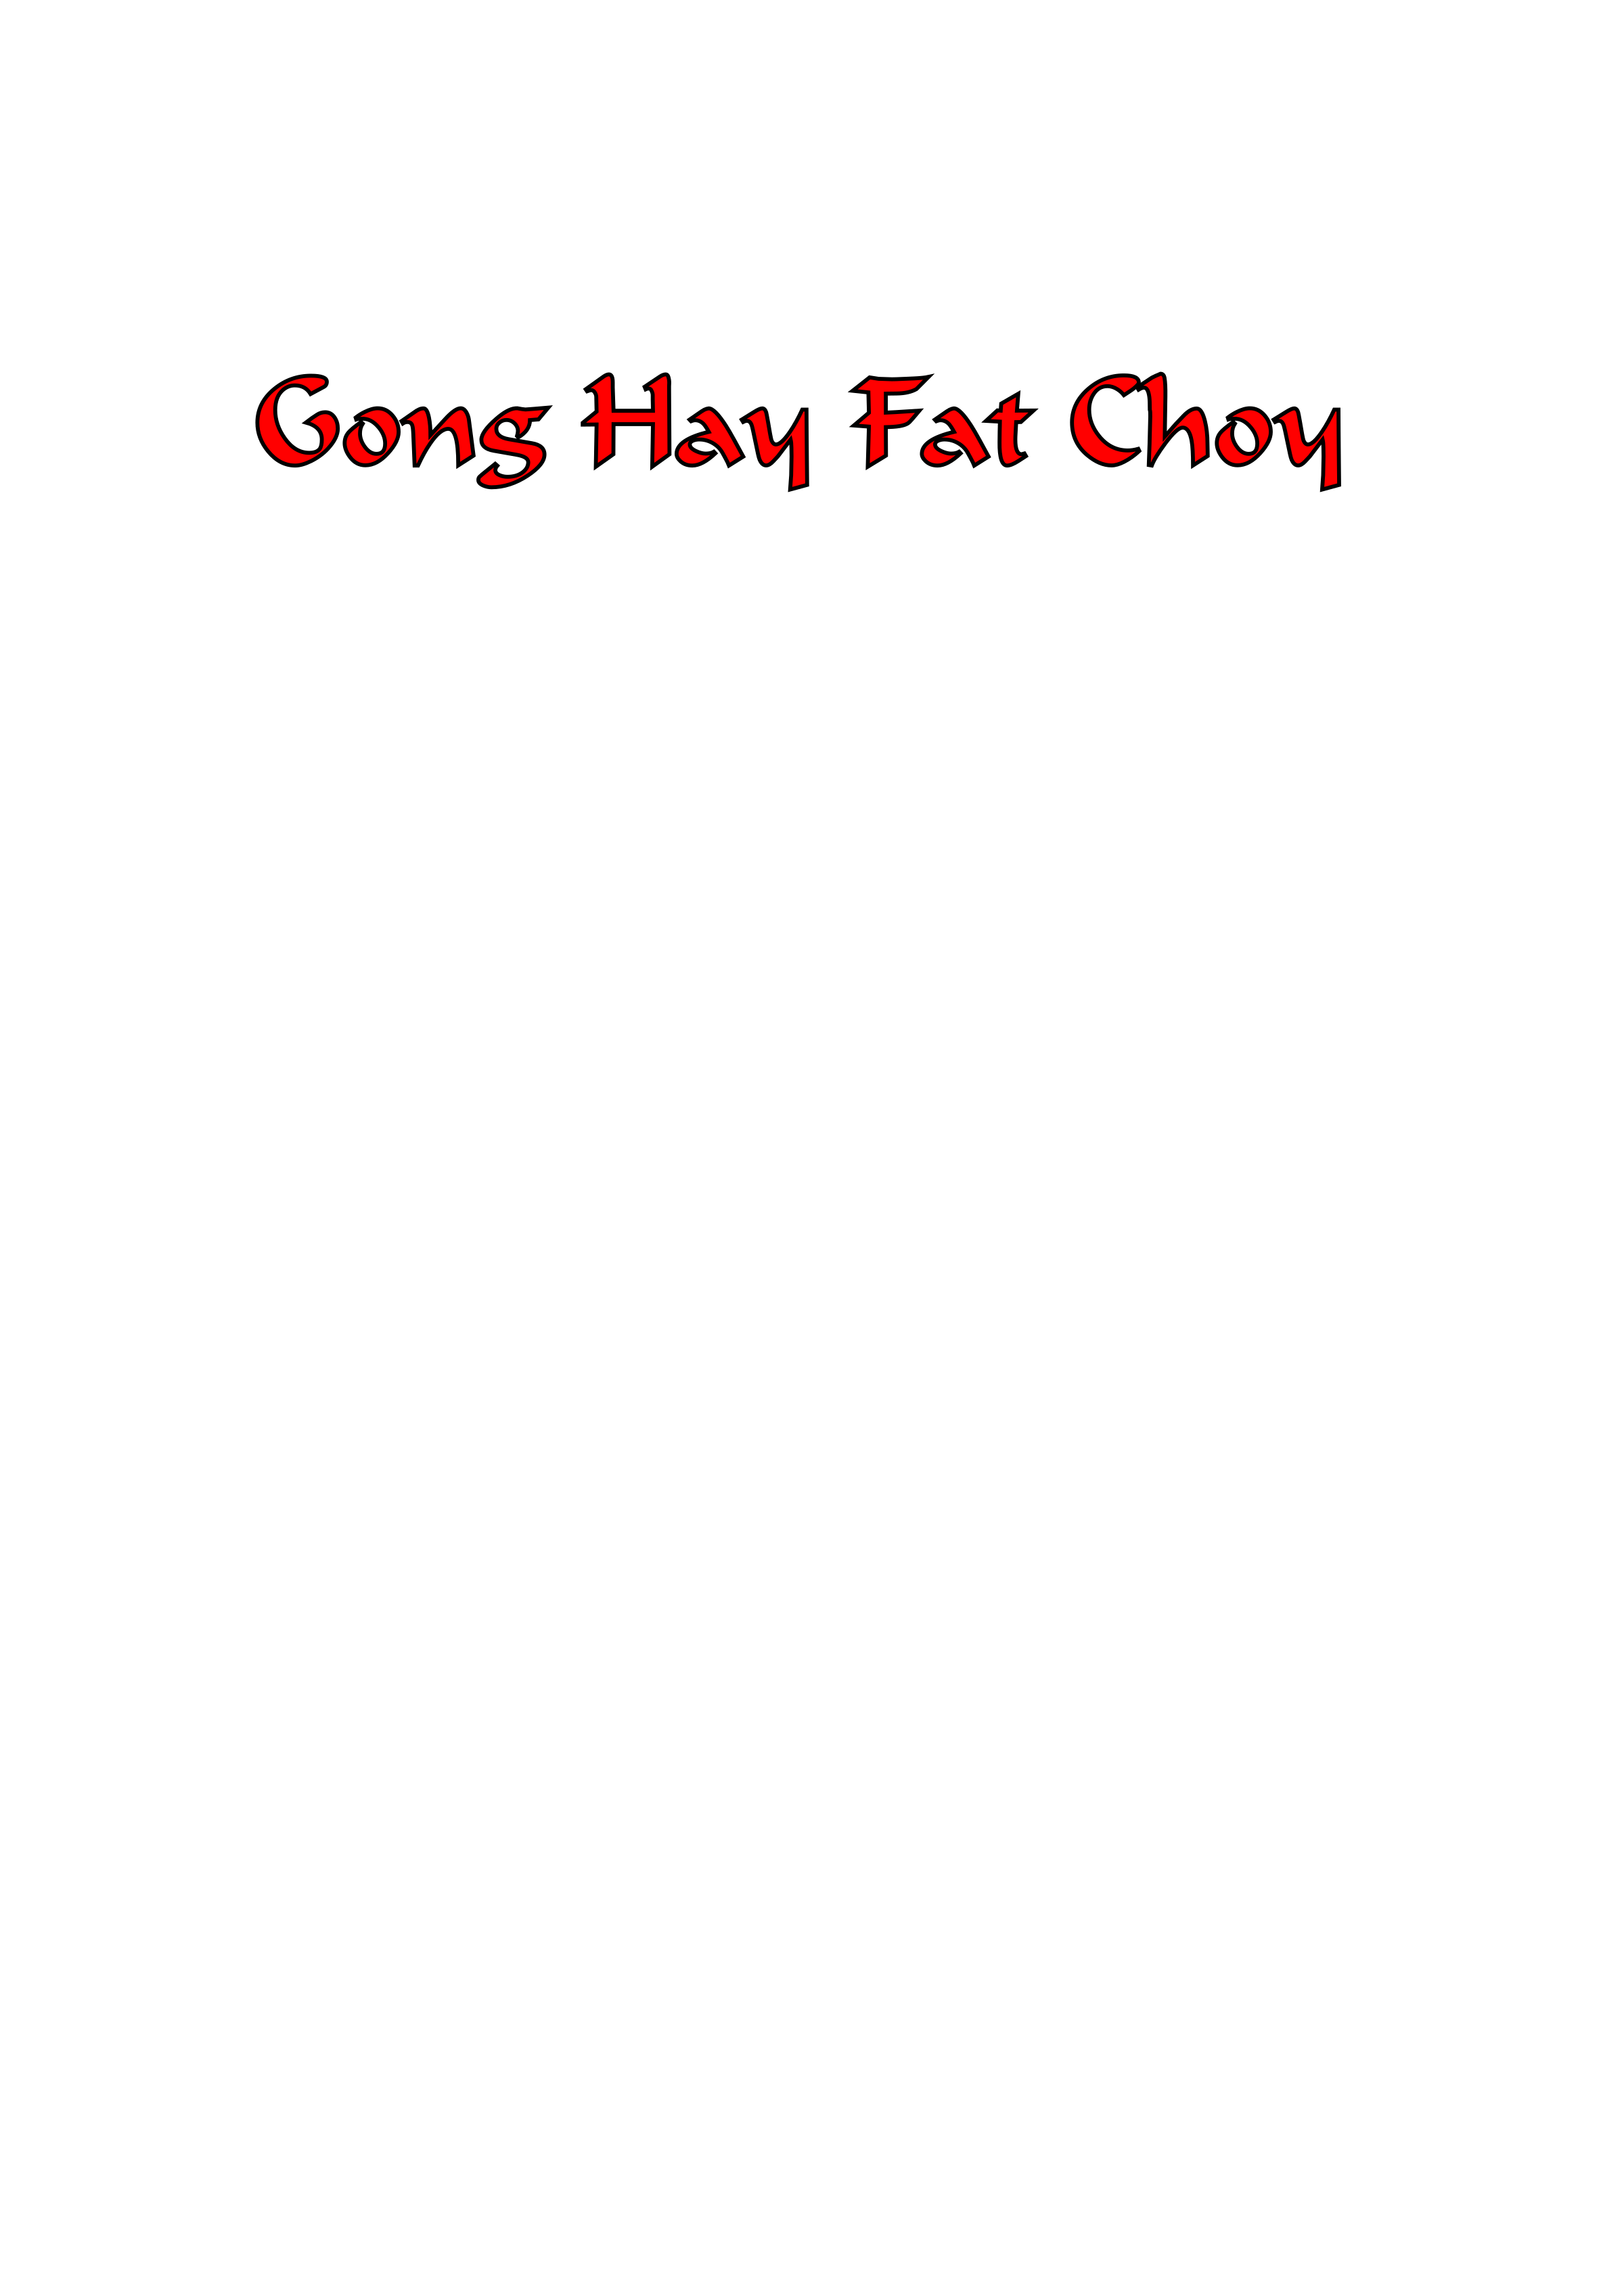 Gong Hay Fat Choy by Cahroozer